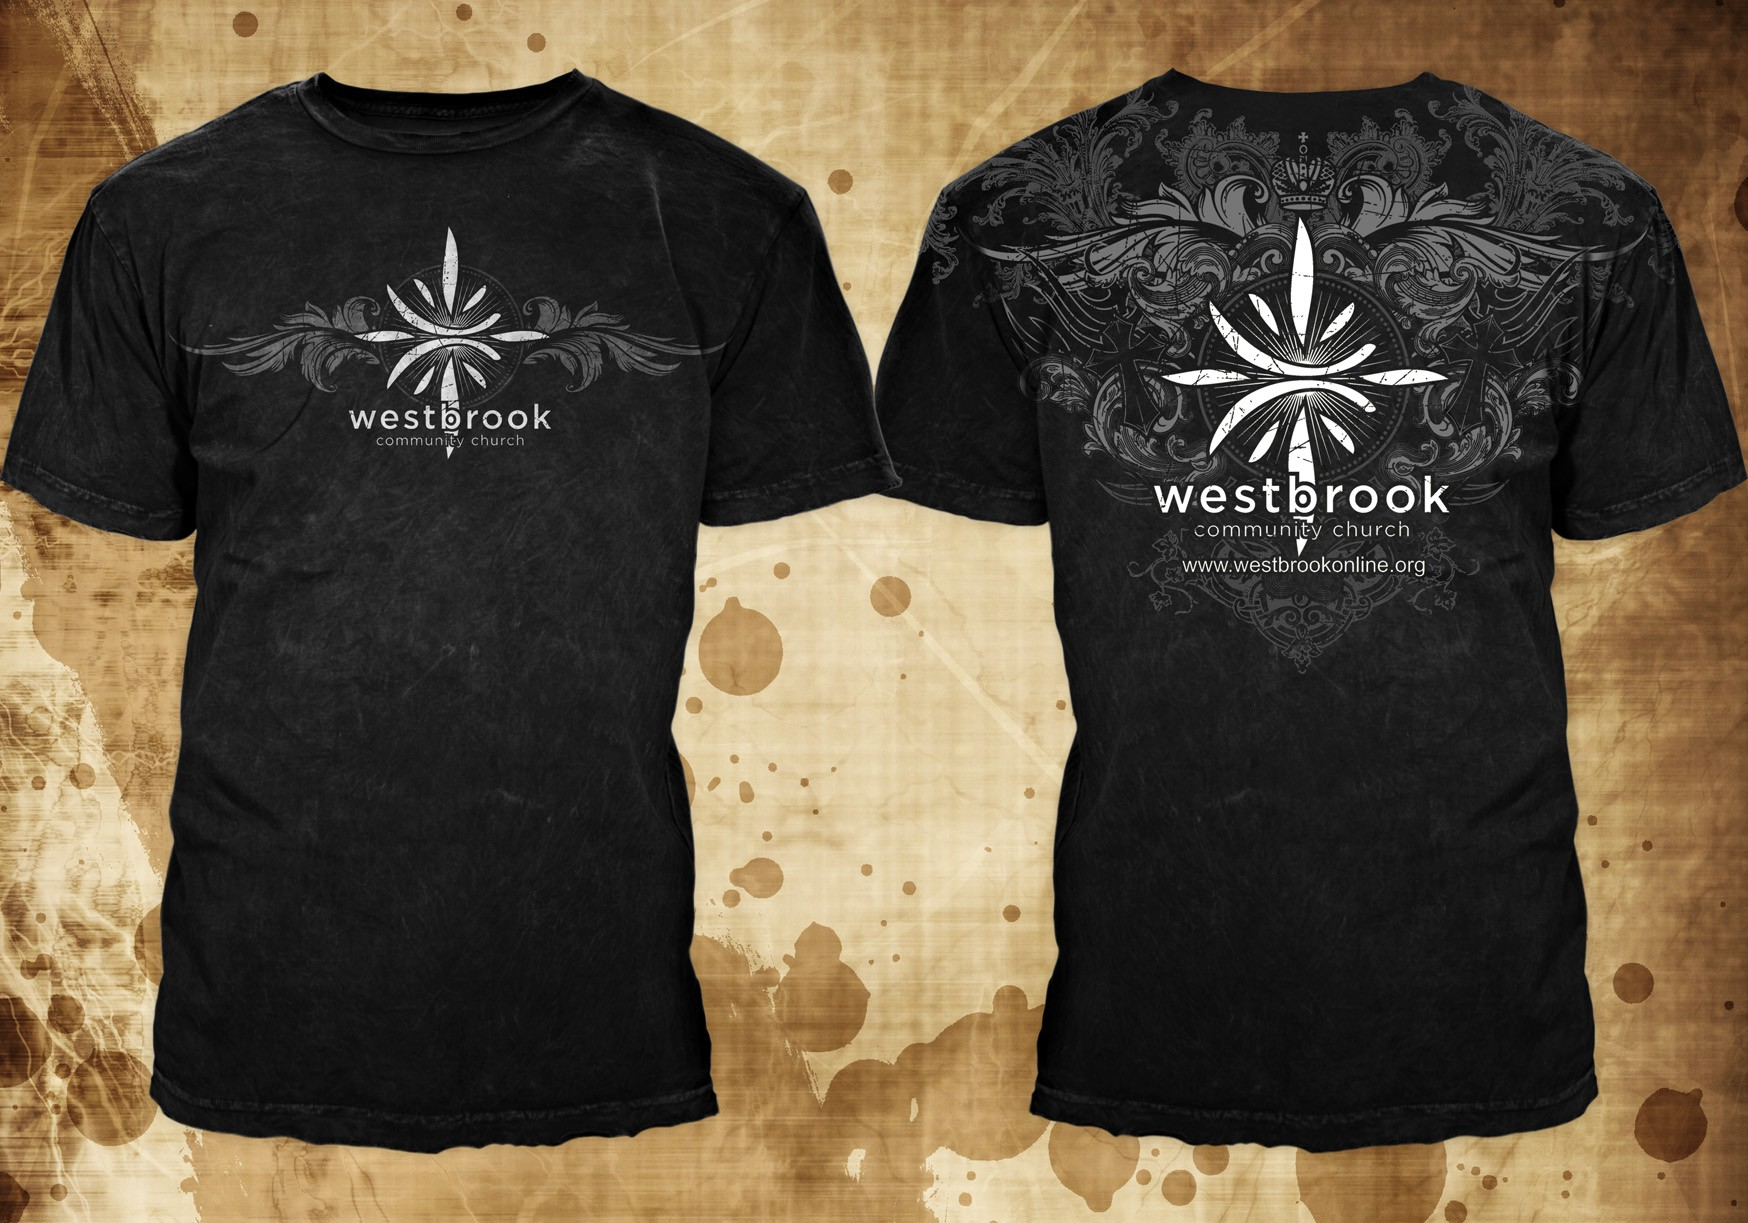 Help Westbrook Community Church with a new t-shirt design